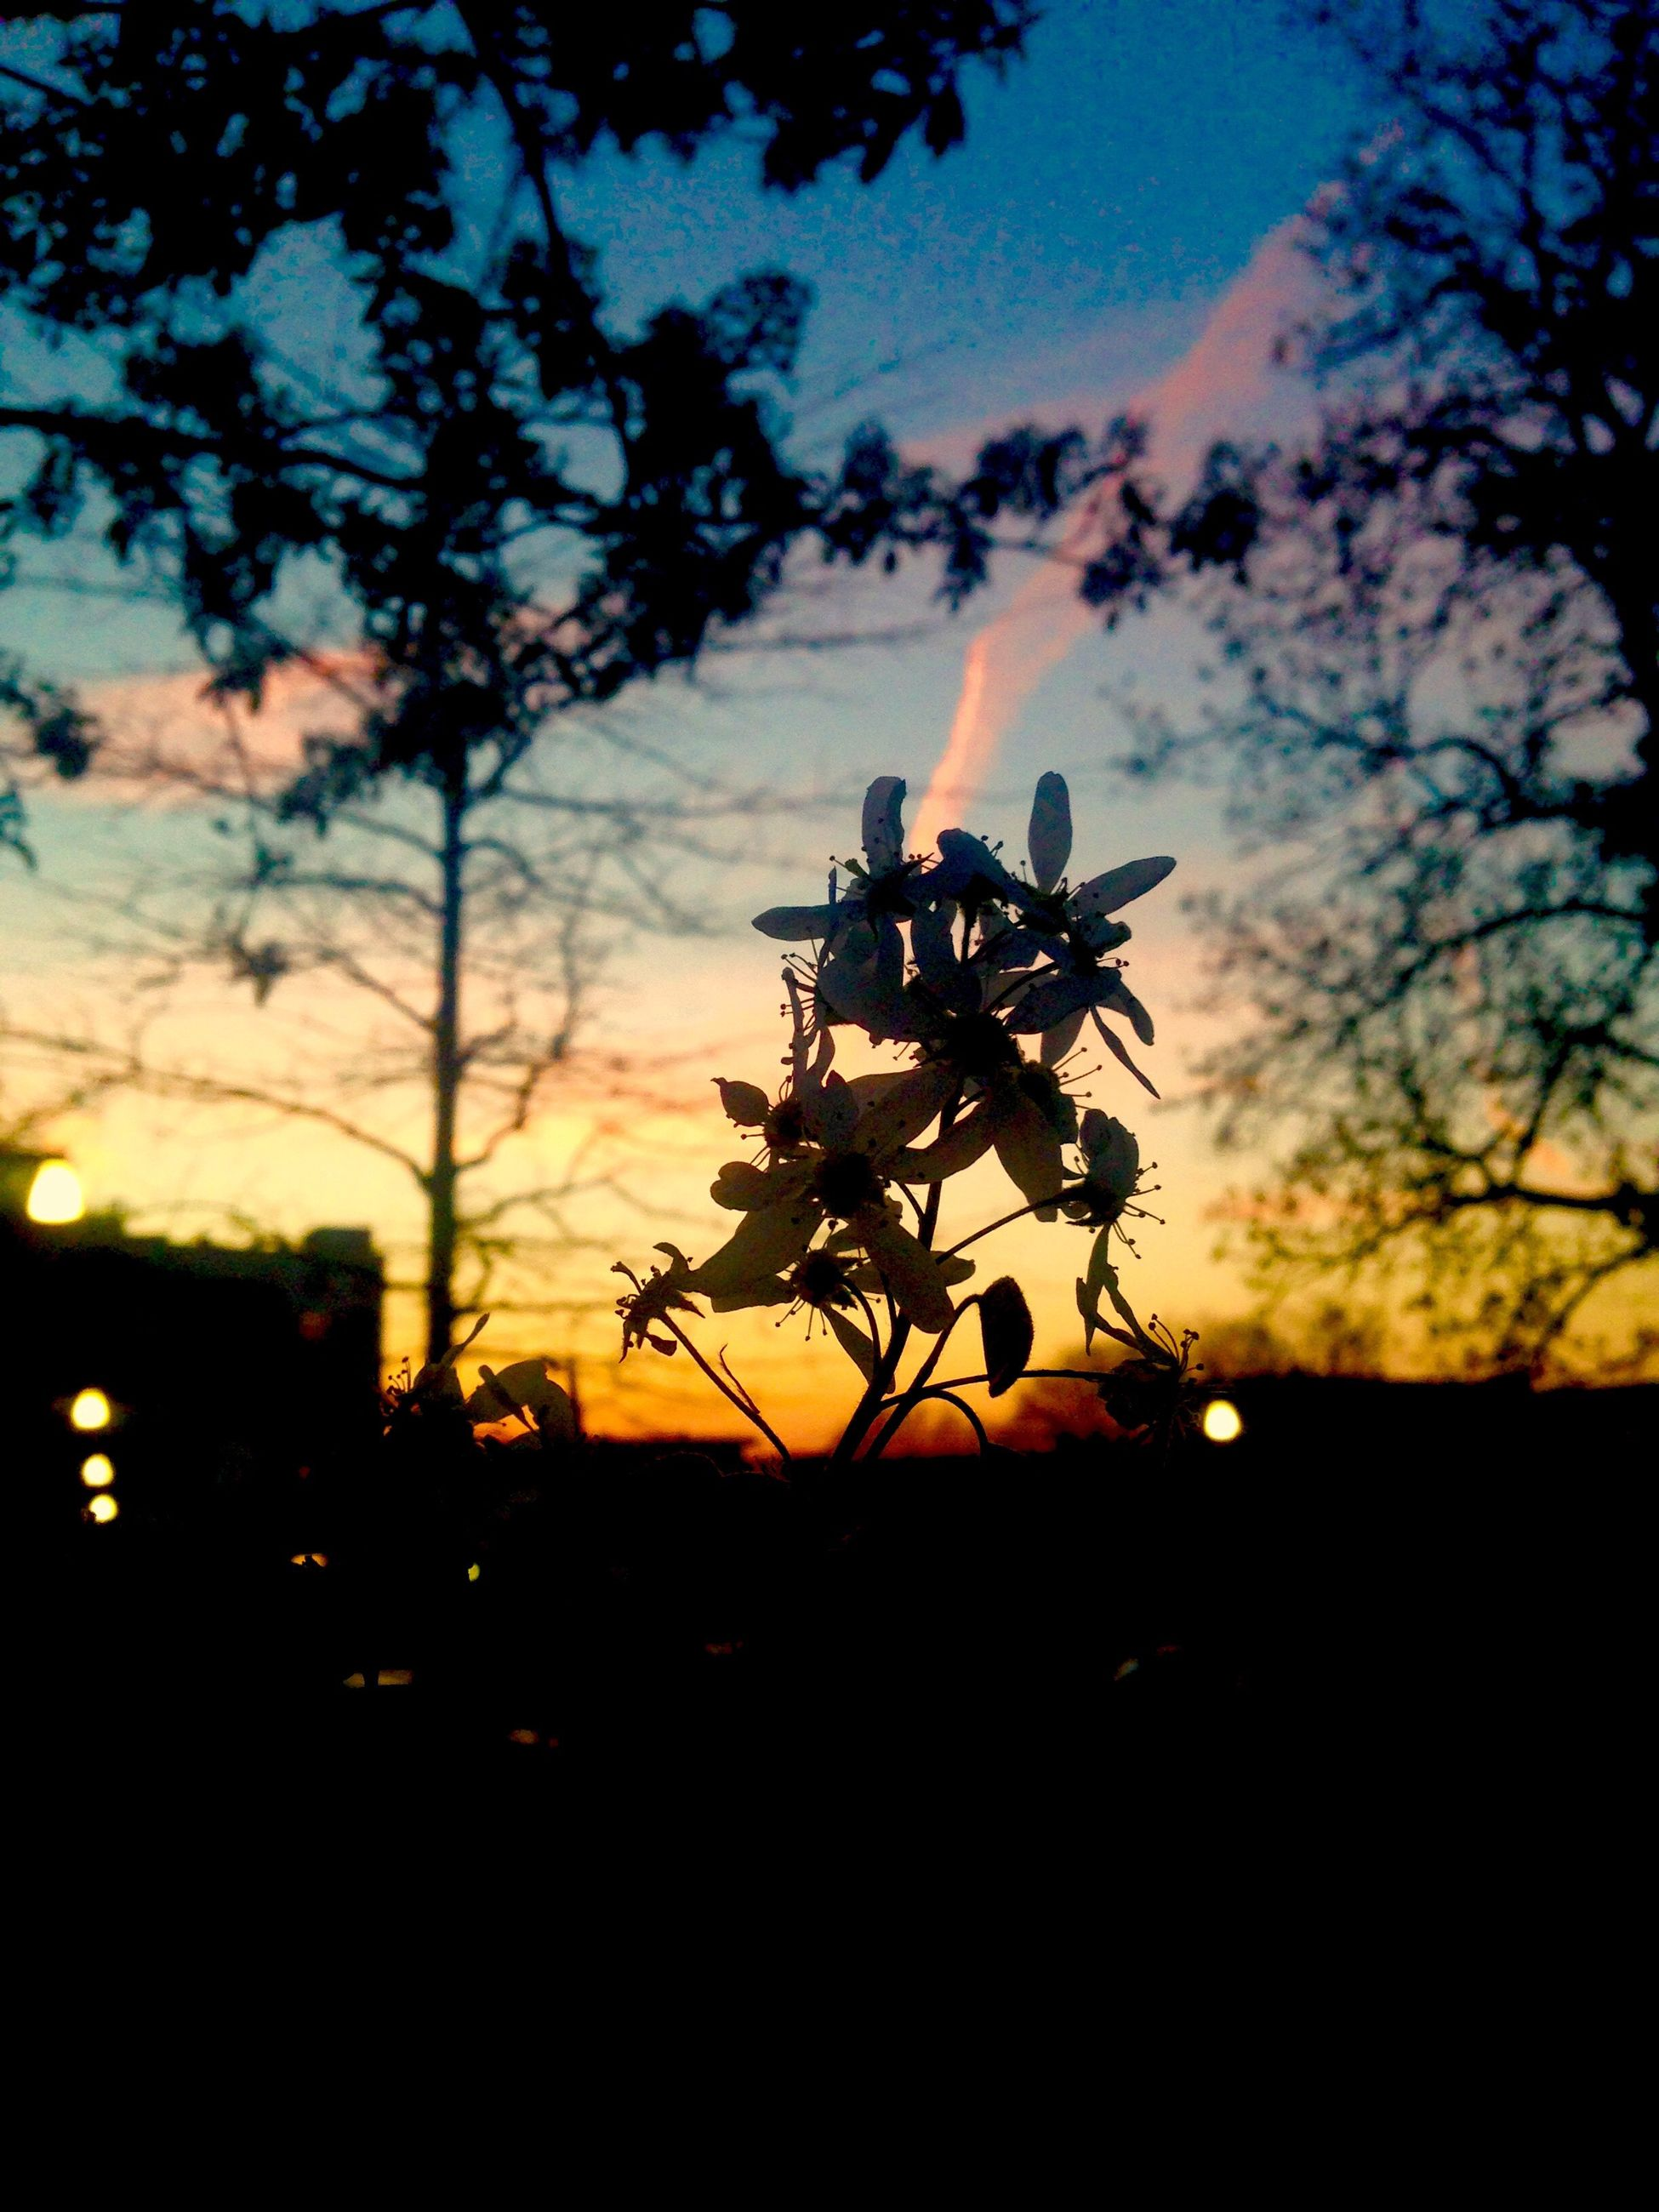 sunset, silhouette, nature, beauty in nature, growth, sky, tree, petal, no people, plant, outdoors, scenics, flower, blooming, flower head, close-up, freshness, day